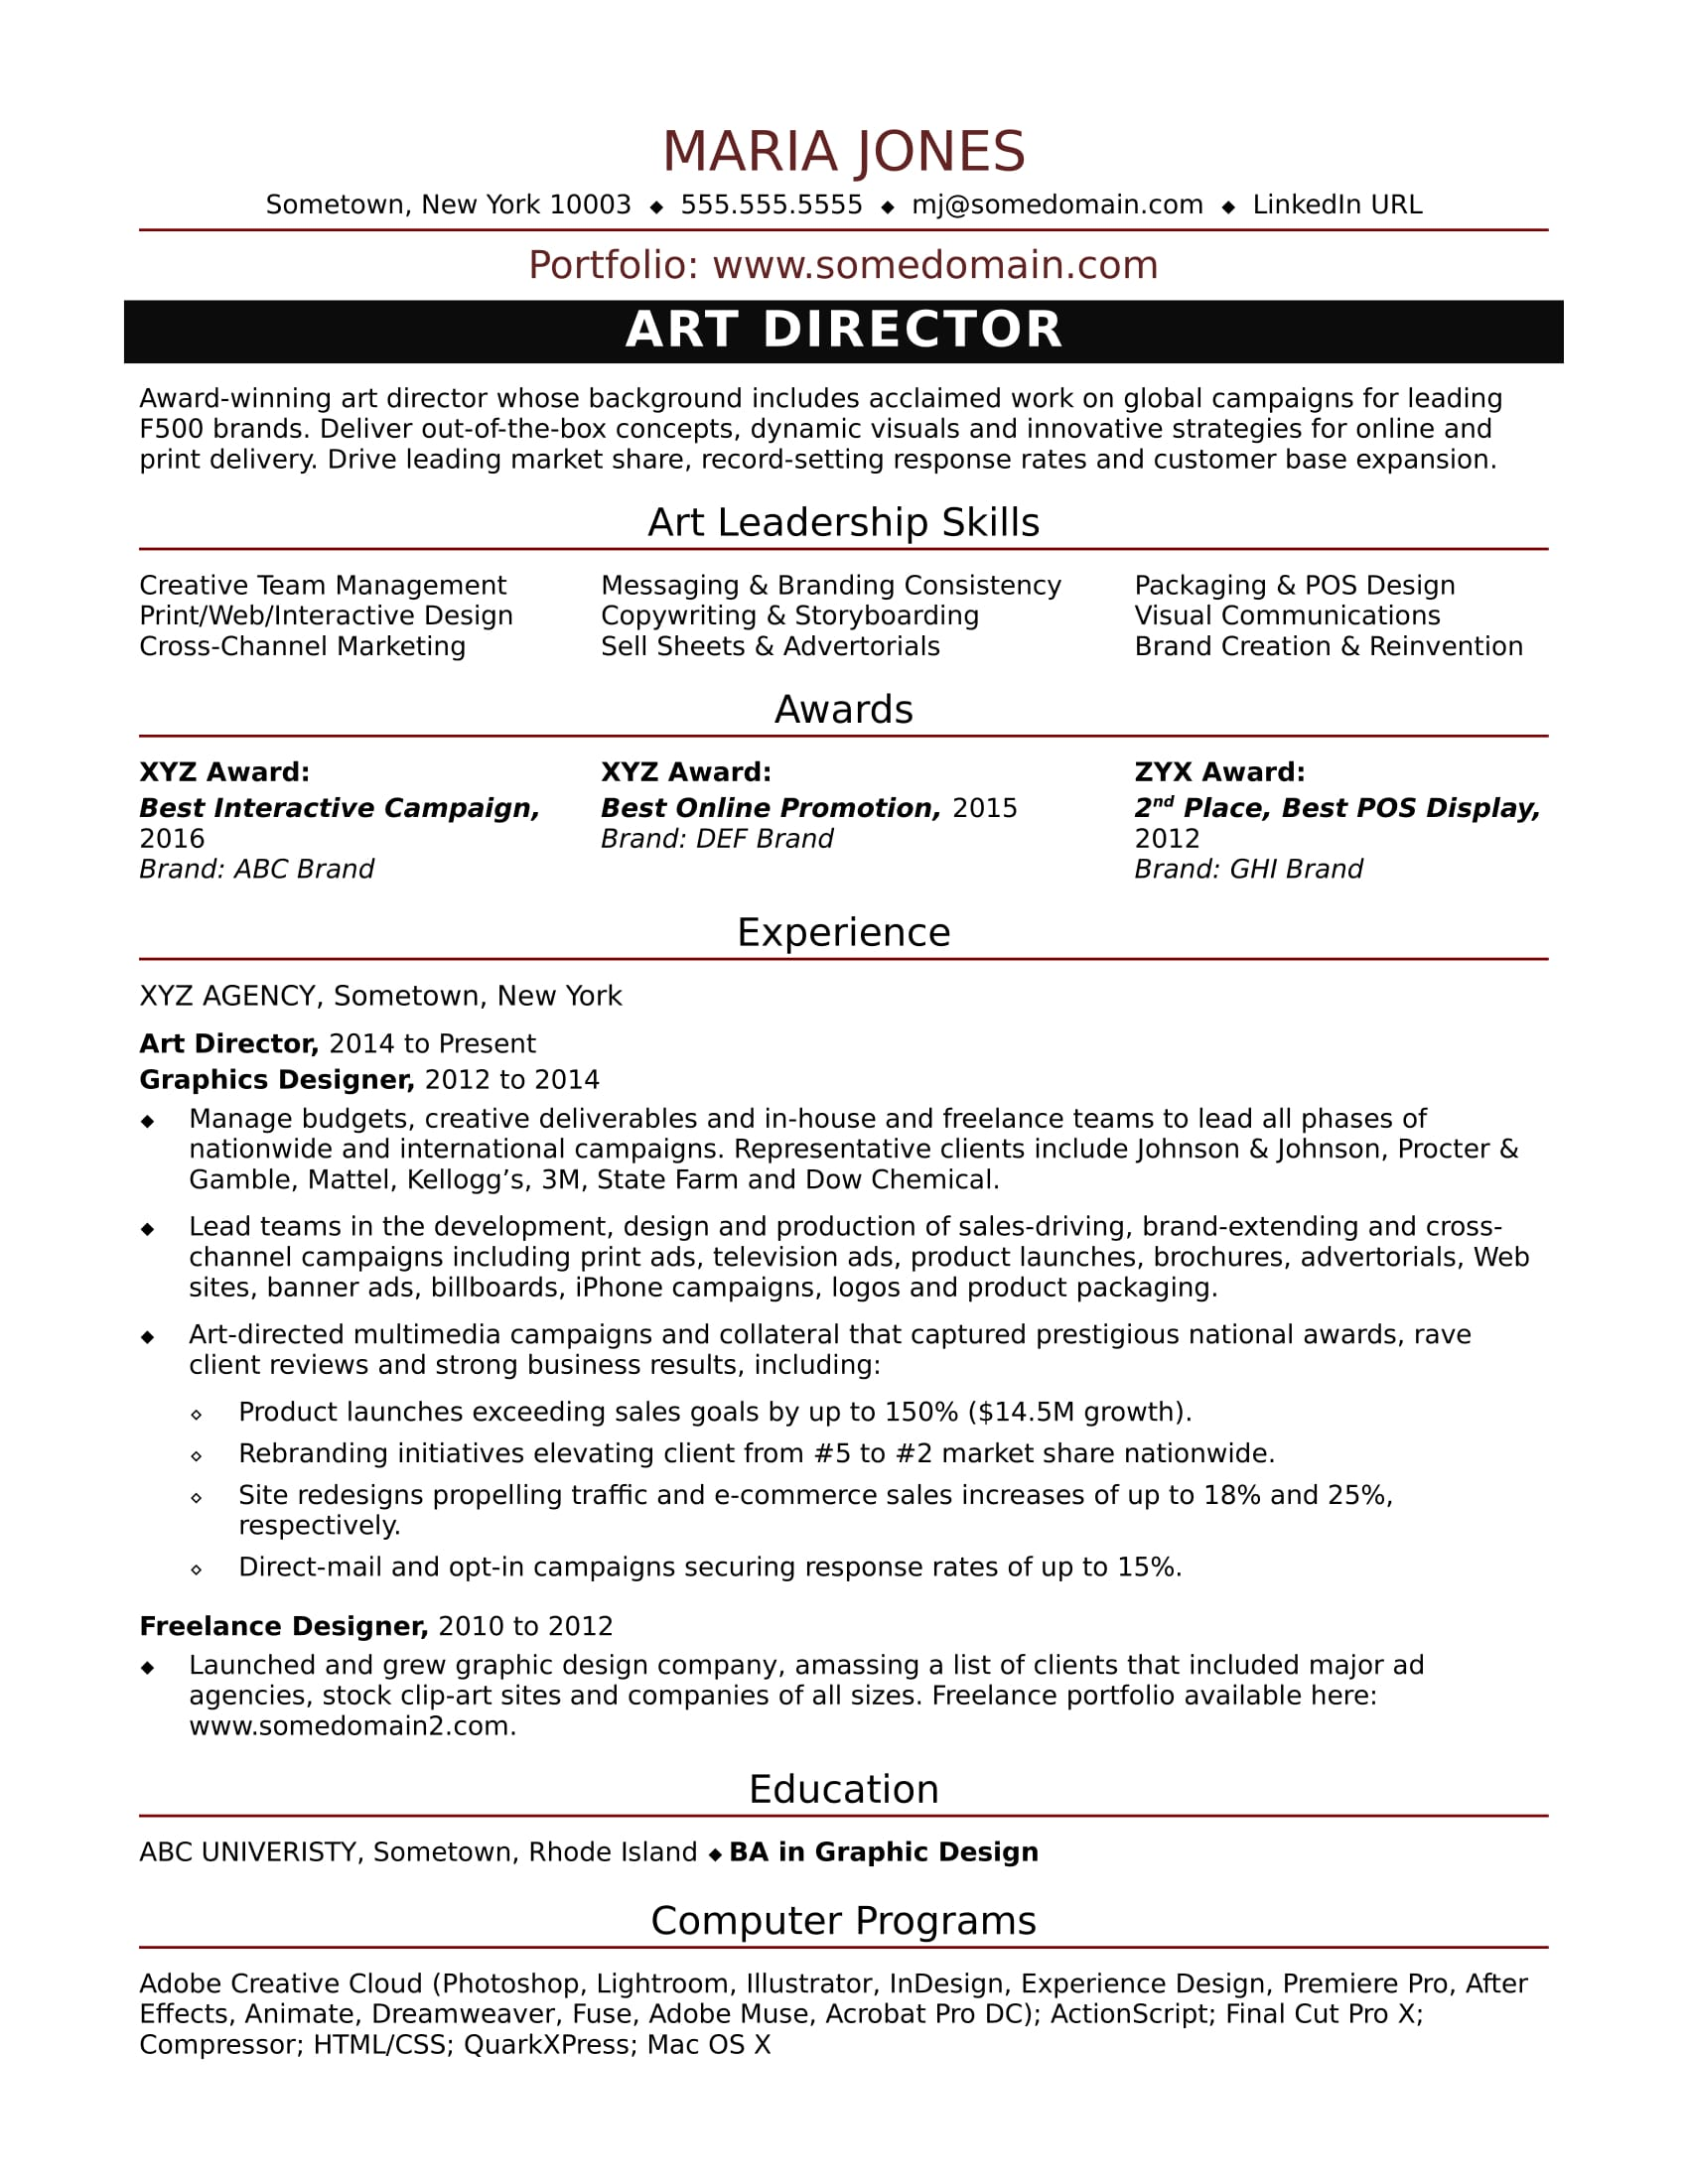 Sample resume for a midlevel art director monster sample resume for a midlevel art director yelopaper Gallery